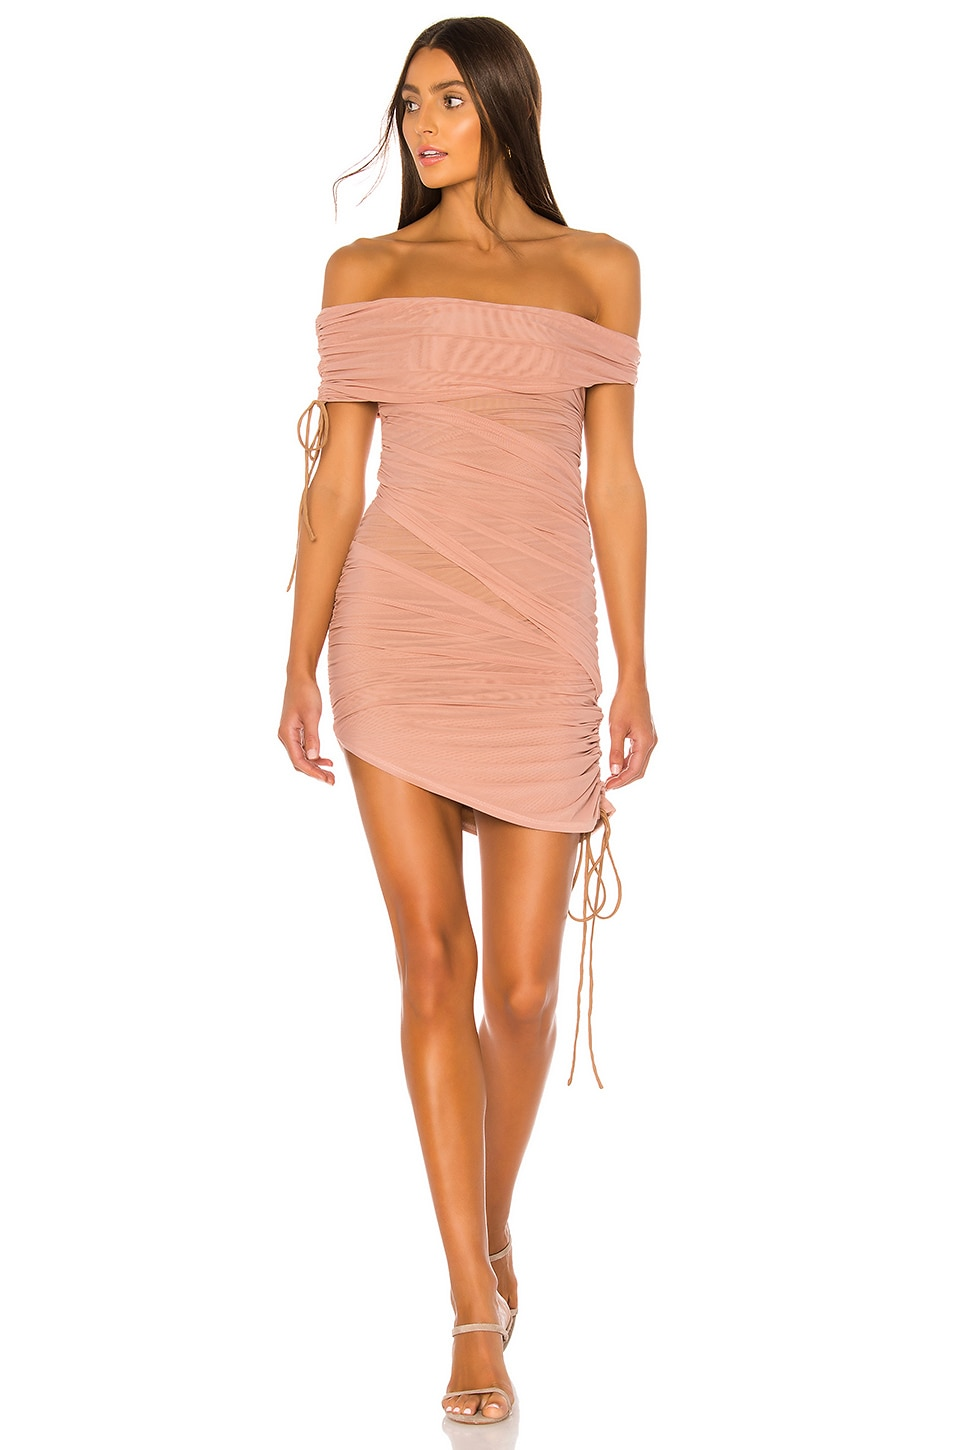 MAJORELLE Phoenix Mini Dress in Nude